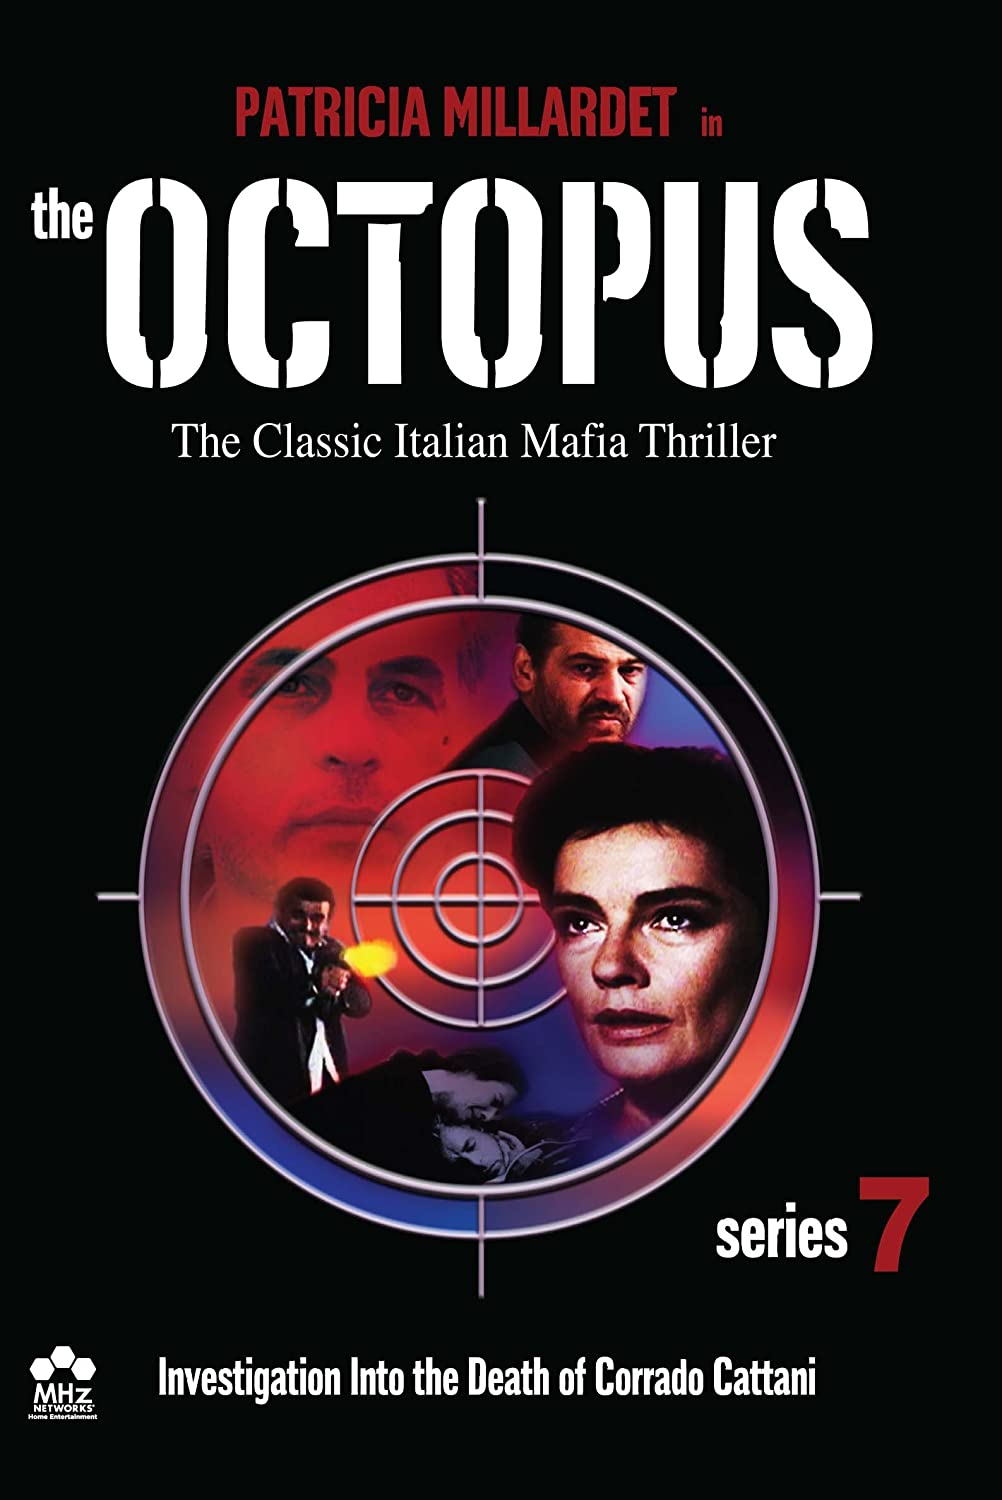 The Octopus: Series 7